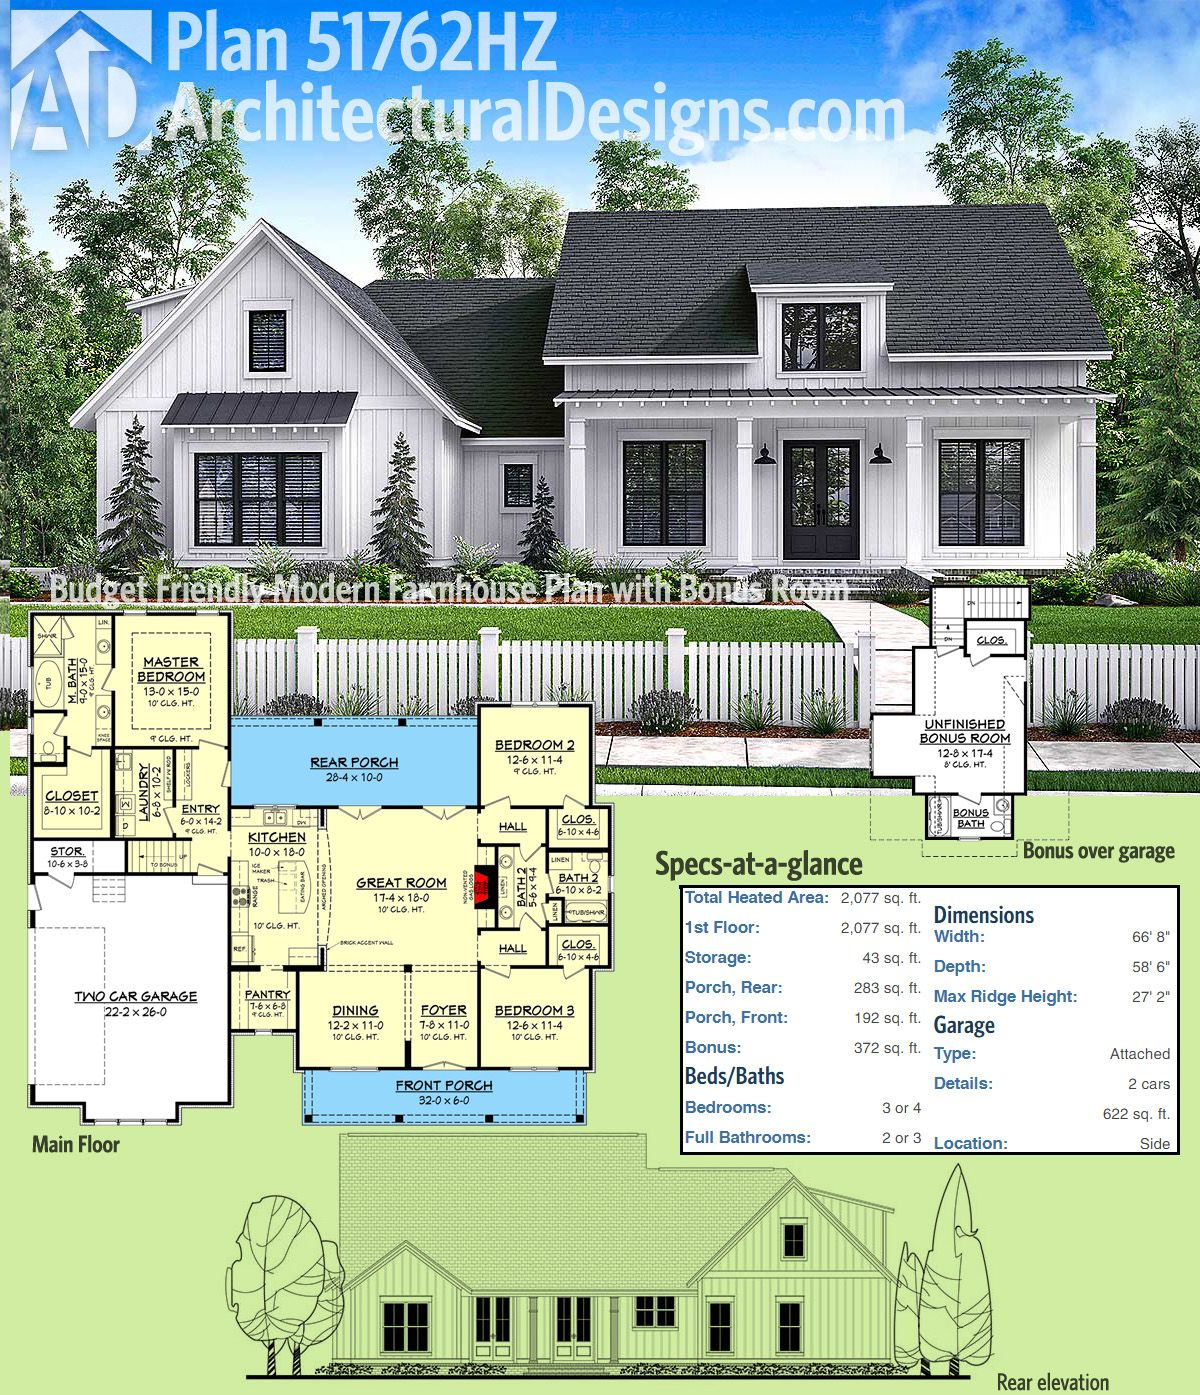 Plan 51762hz budget friendly modern farmhouse plan with for 2000 sq ft farmhouse plans